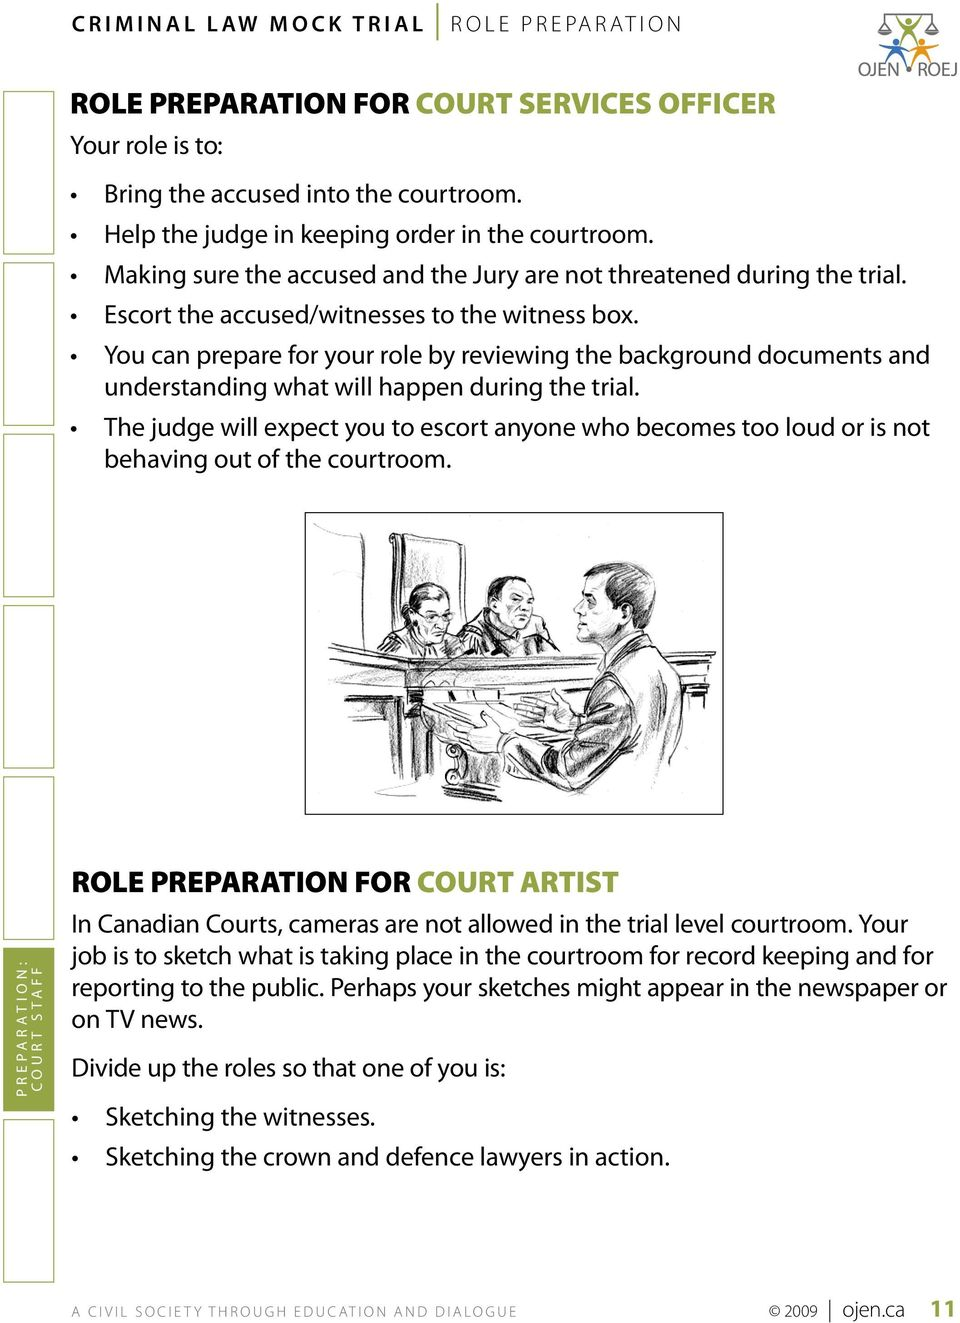 You can prepare for your role by reviewing the background documents and understanding what will happen during the trial.